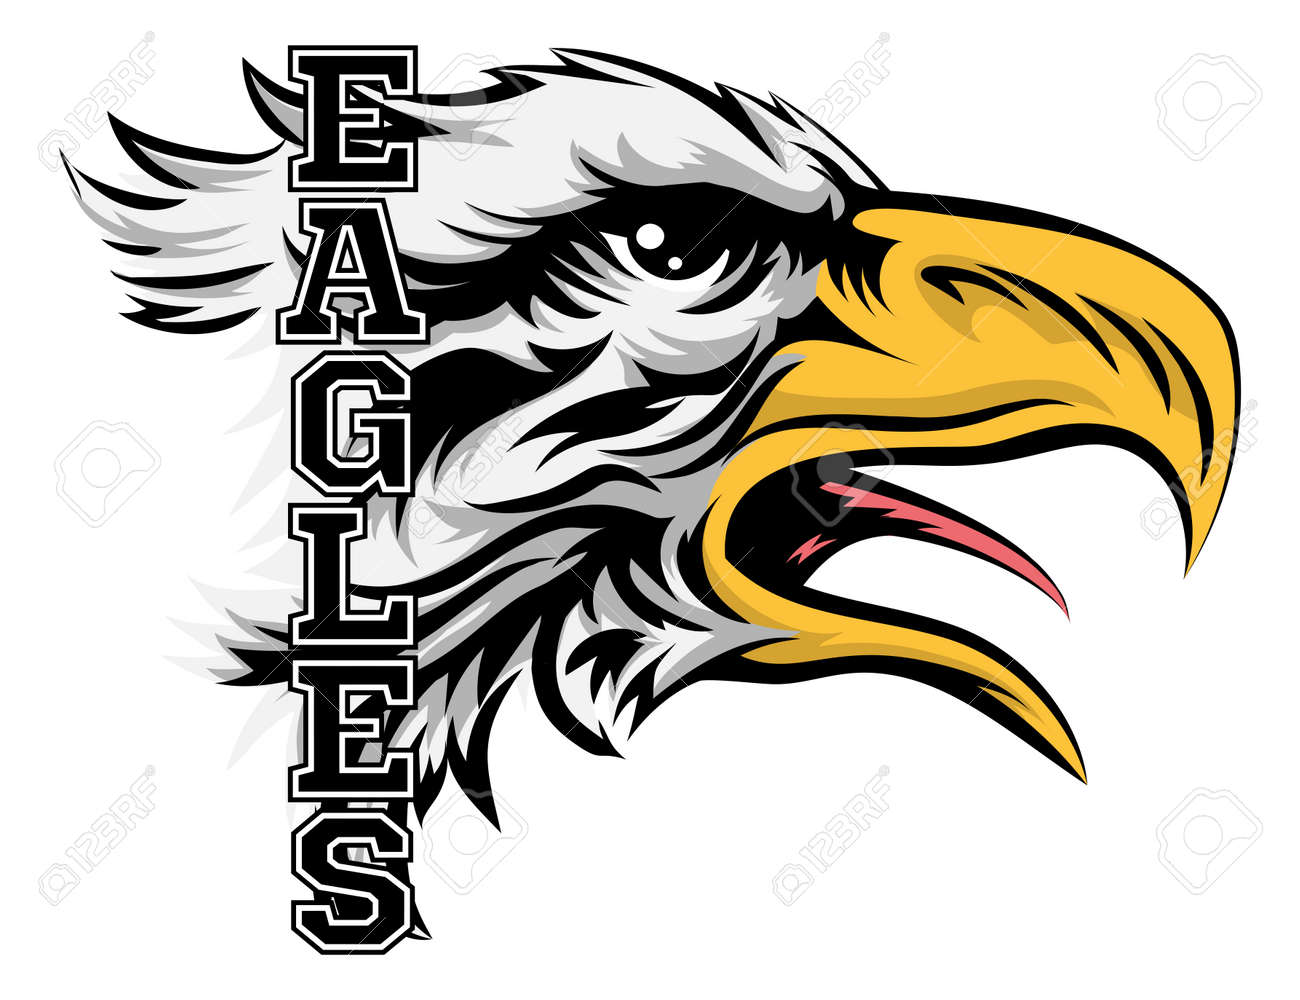 38 522 eagle stock vector illustration and royalty free eagle clipart rh 123rf com eagles clipart eagle clip art pictures